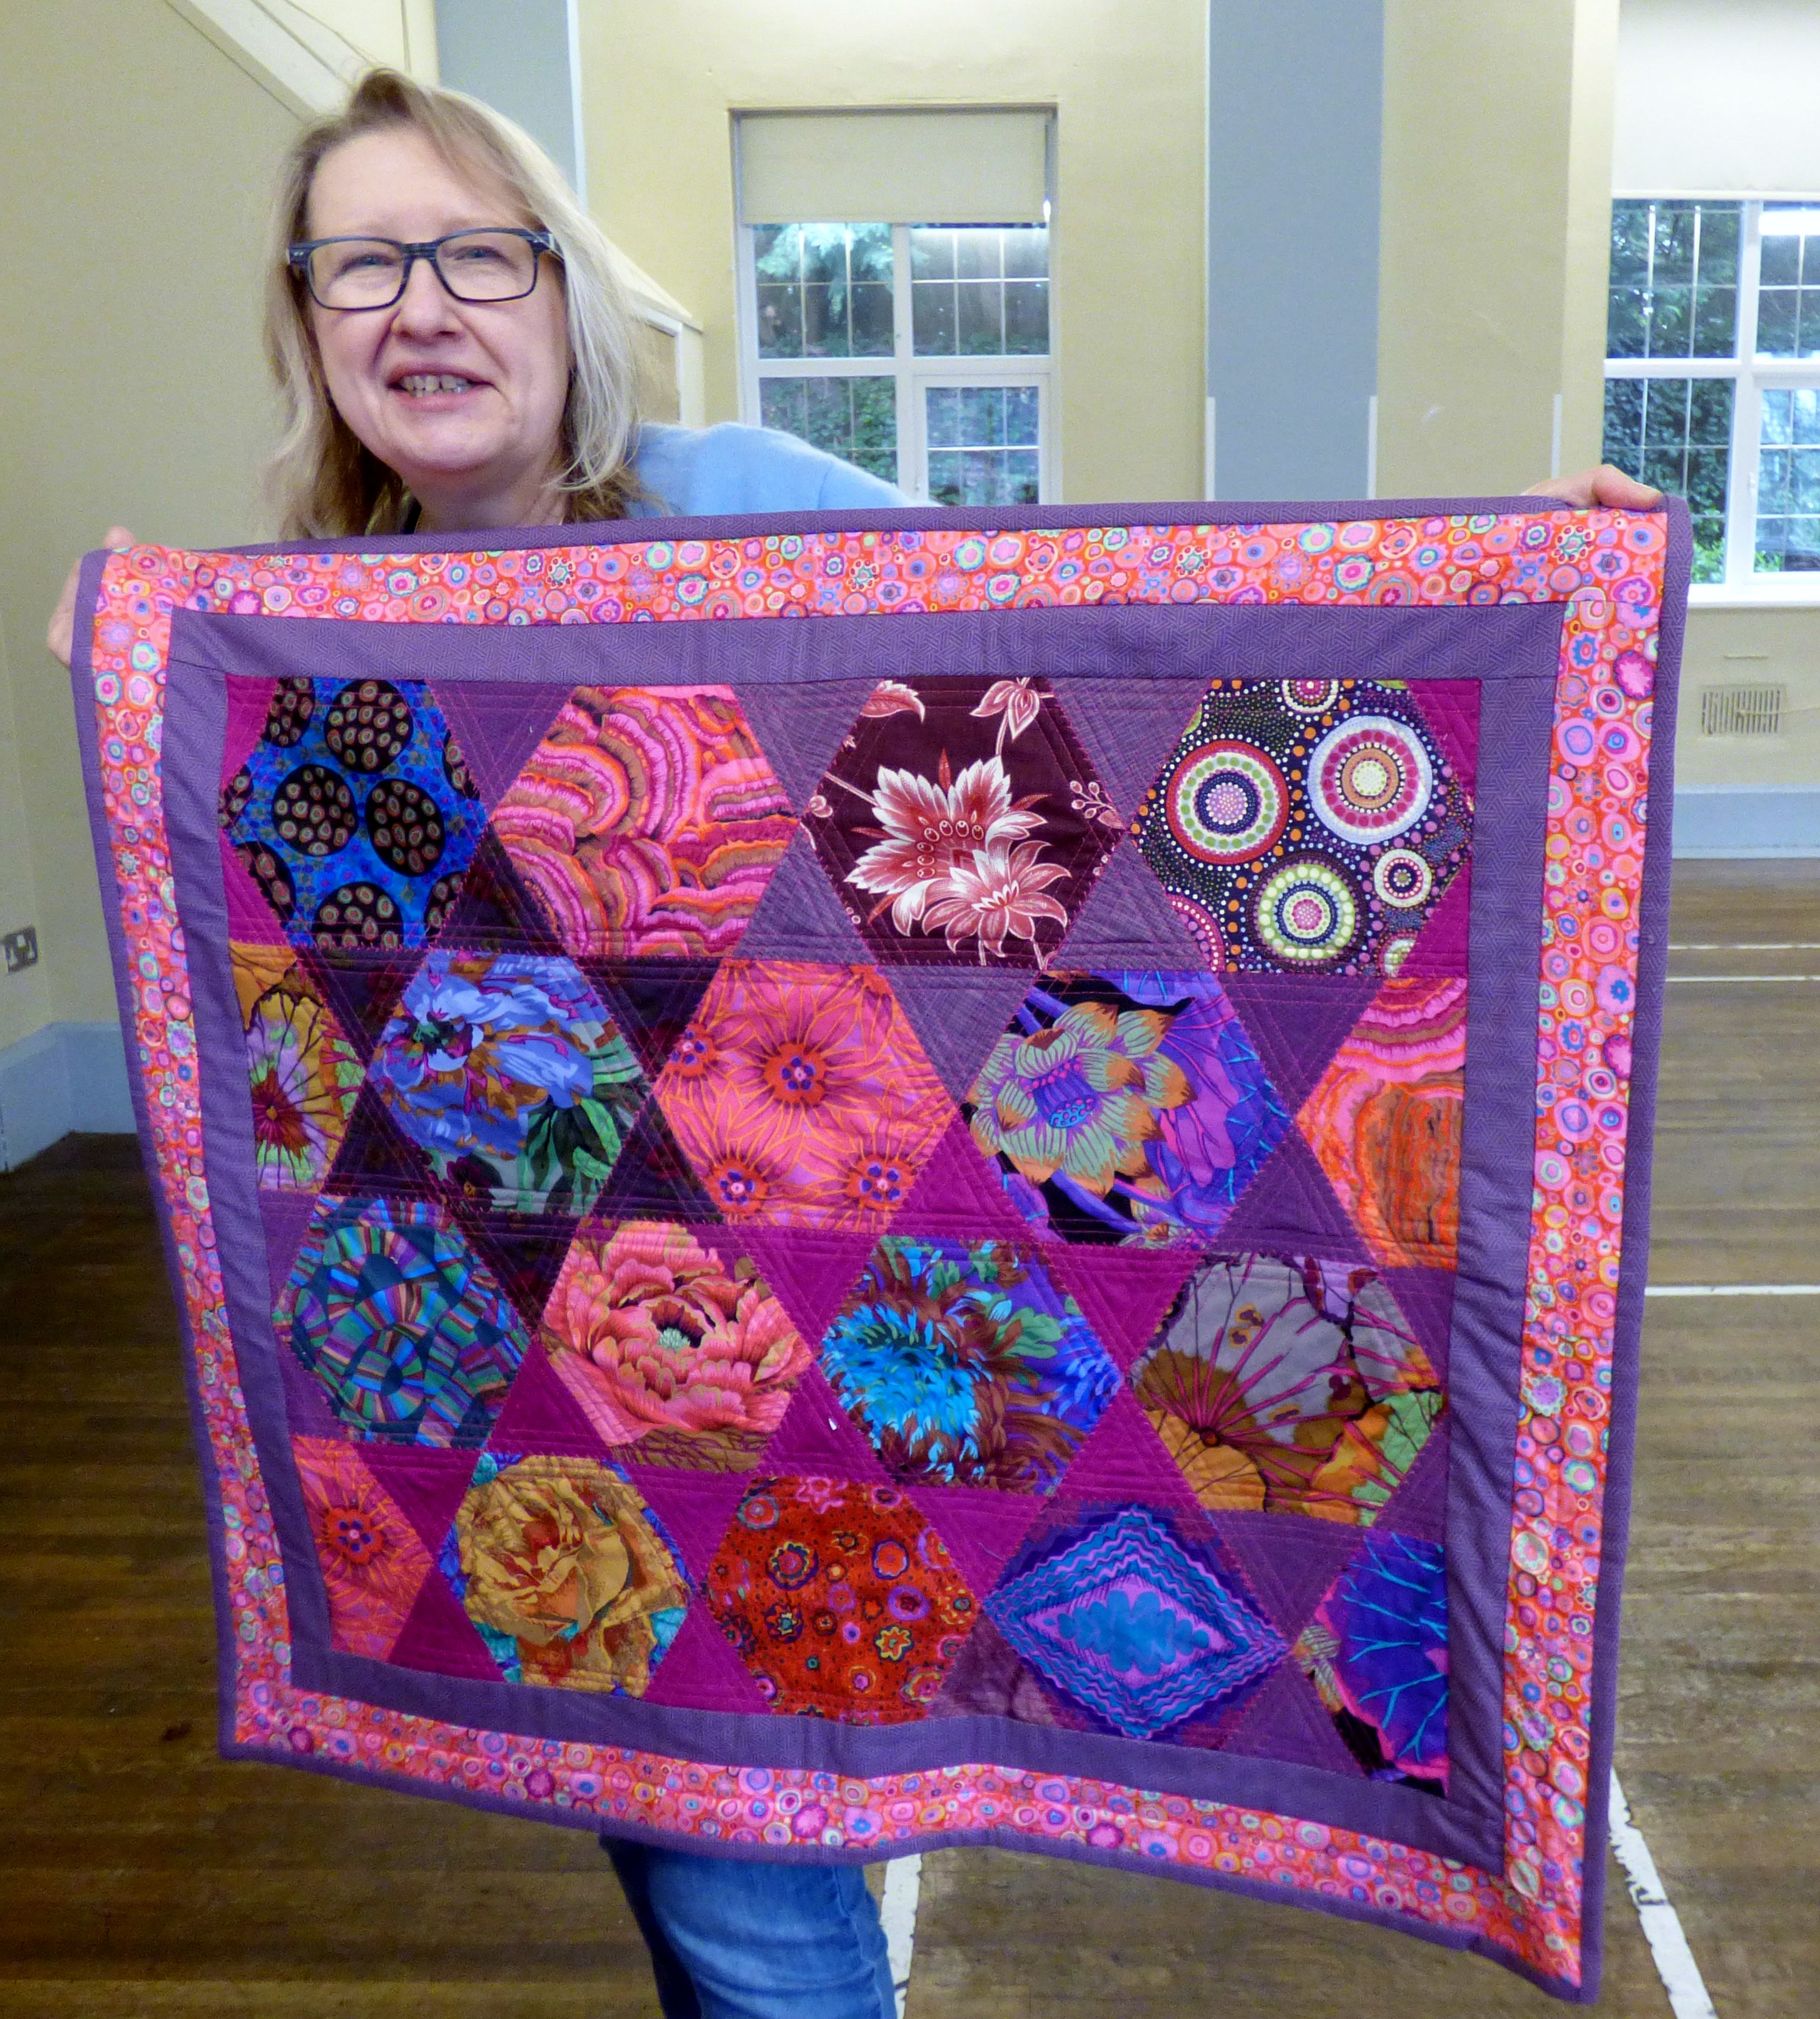 cushion cover by Gill Roberts. Thiis quilt was made from off cuts from the Kaffe Fassett workshop